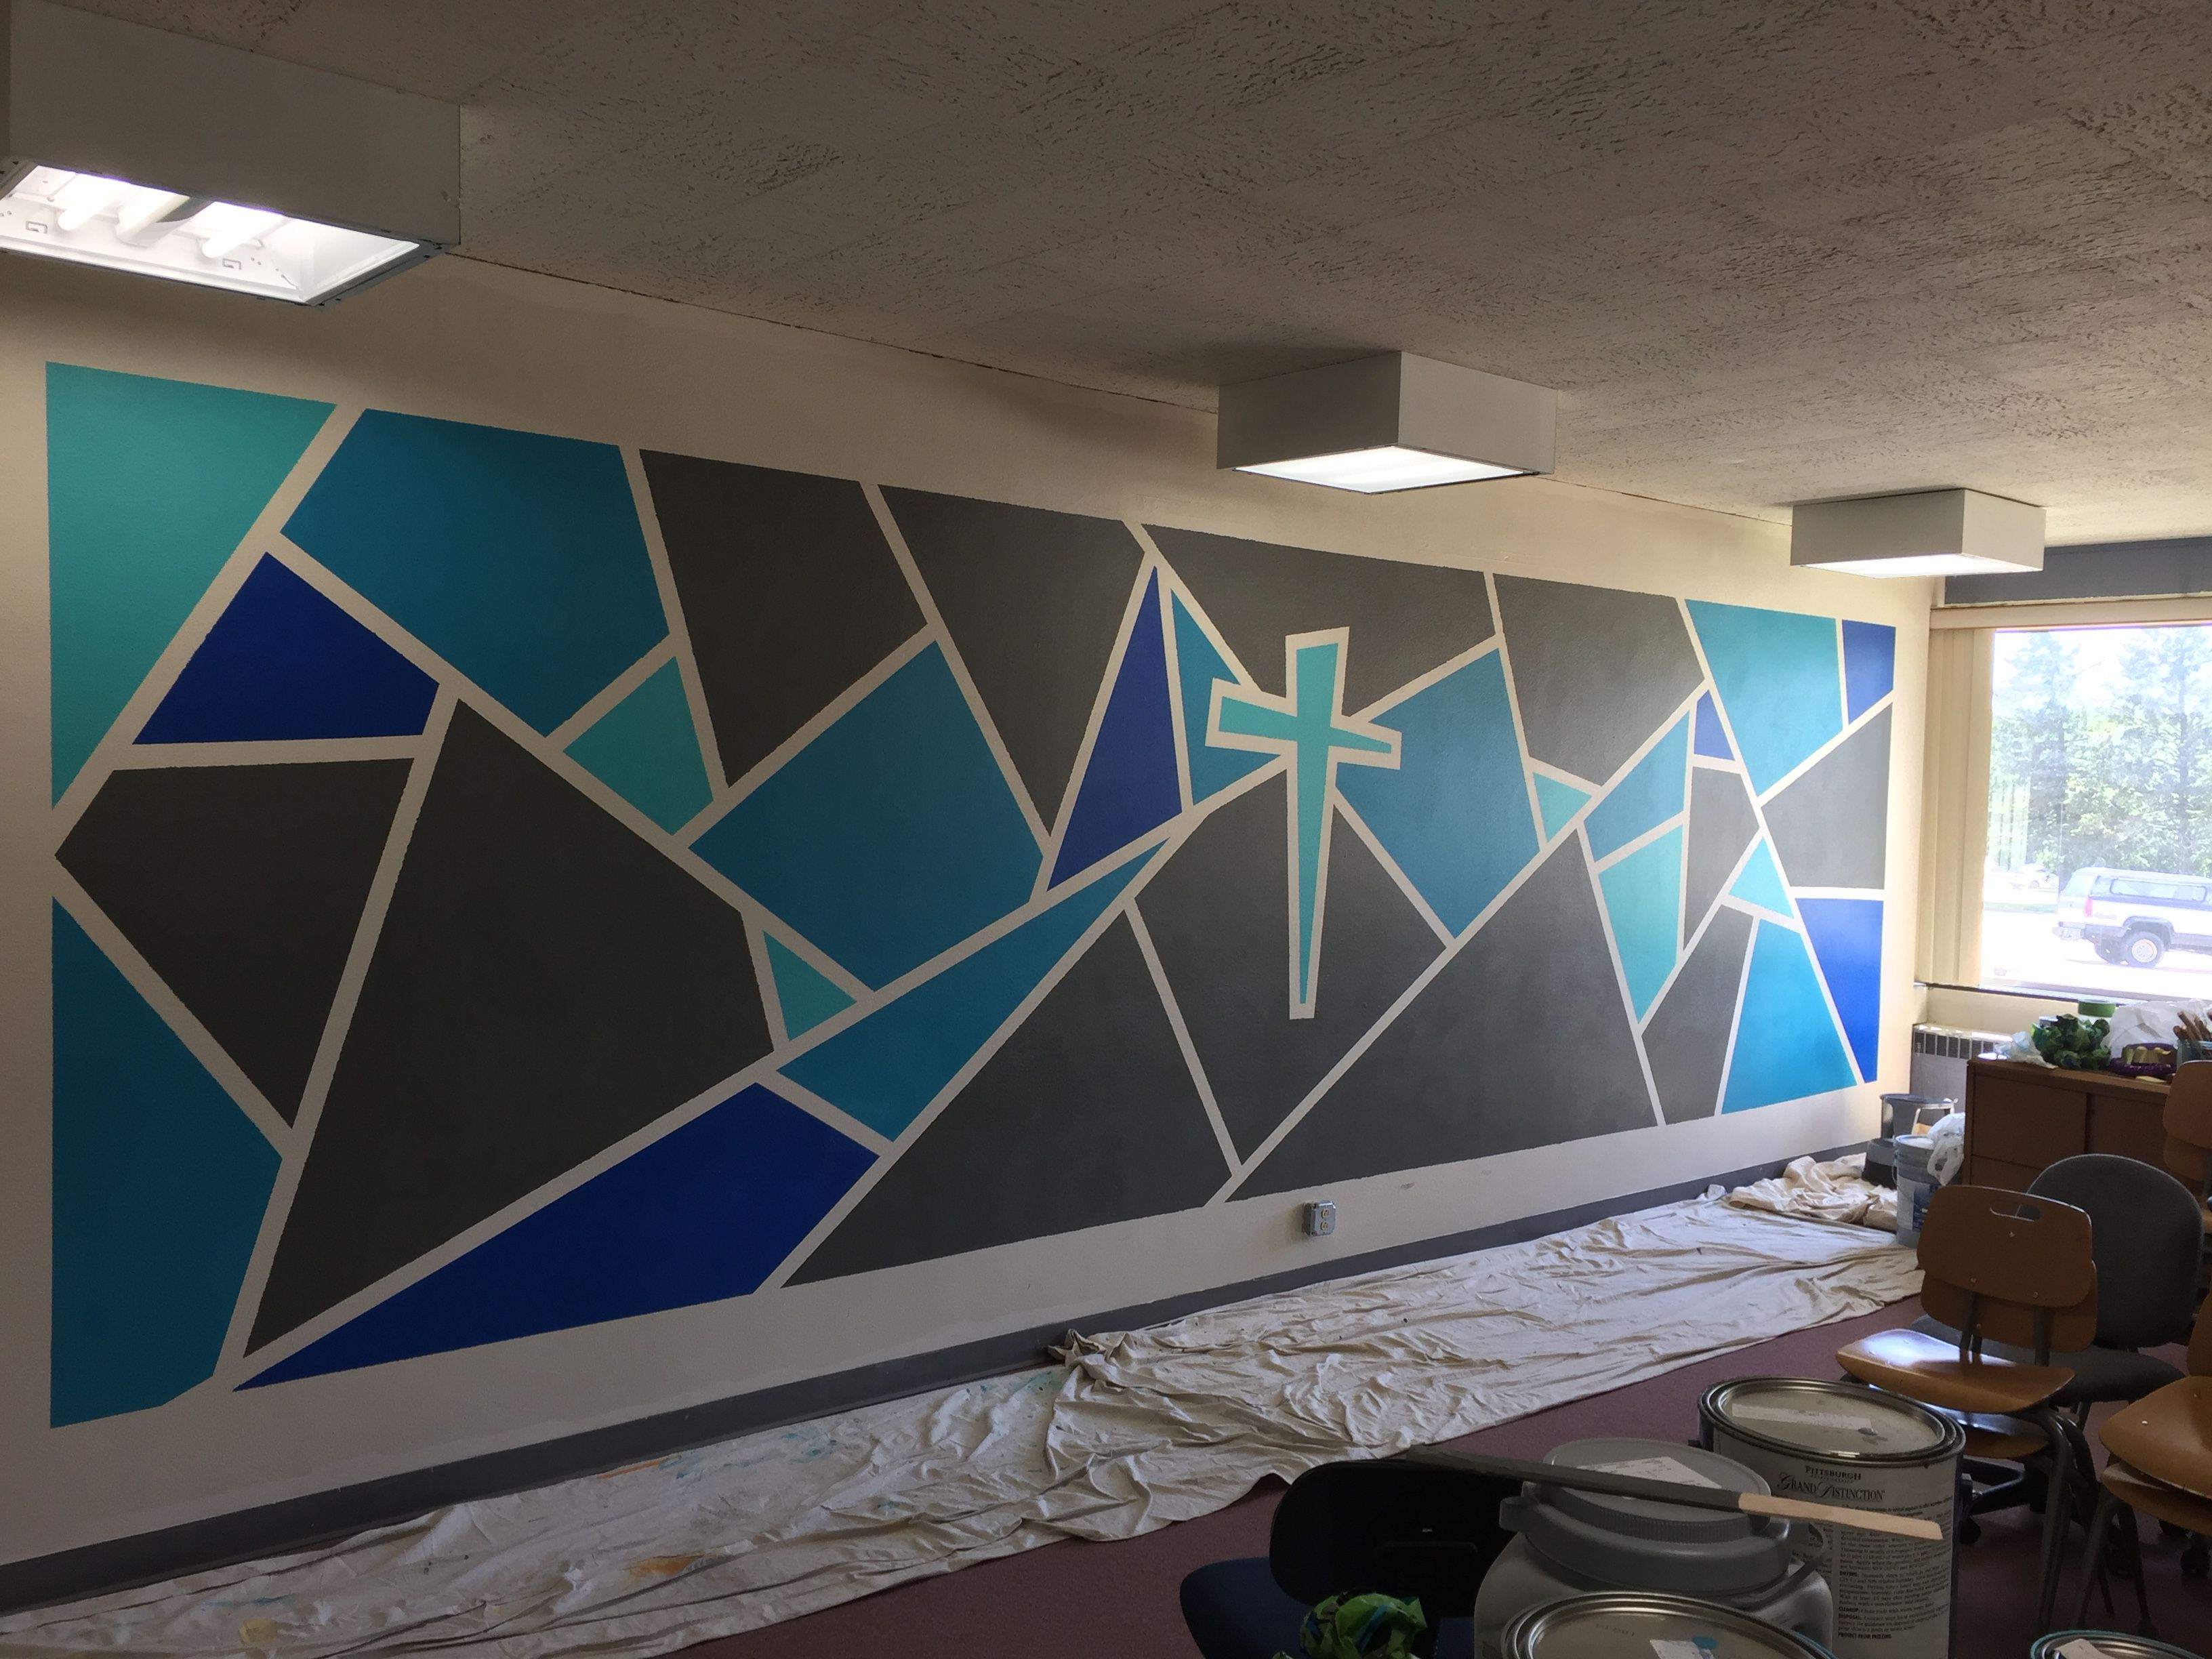 Youth Ministry Room Polygon Wall Design St John Ucc Freeport Il Youth Room Church Youth Group Rooms Youth Ministry Room